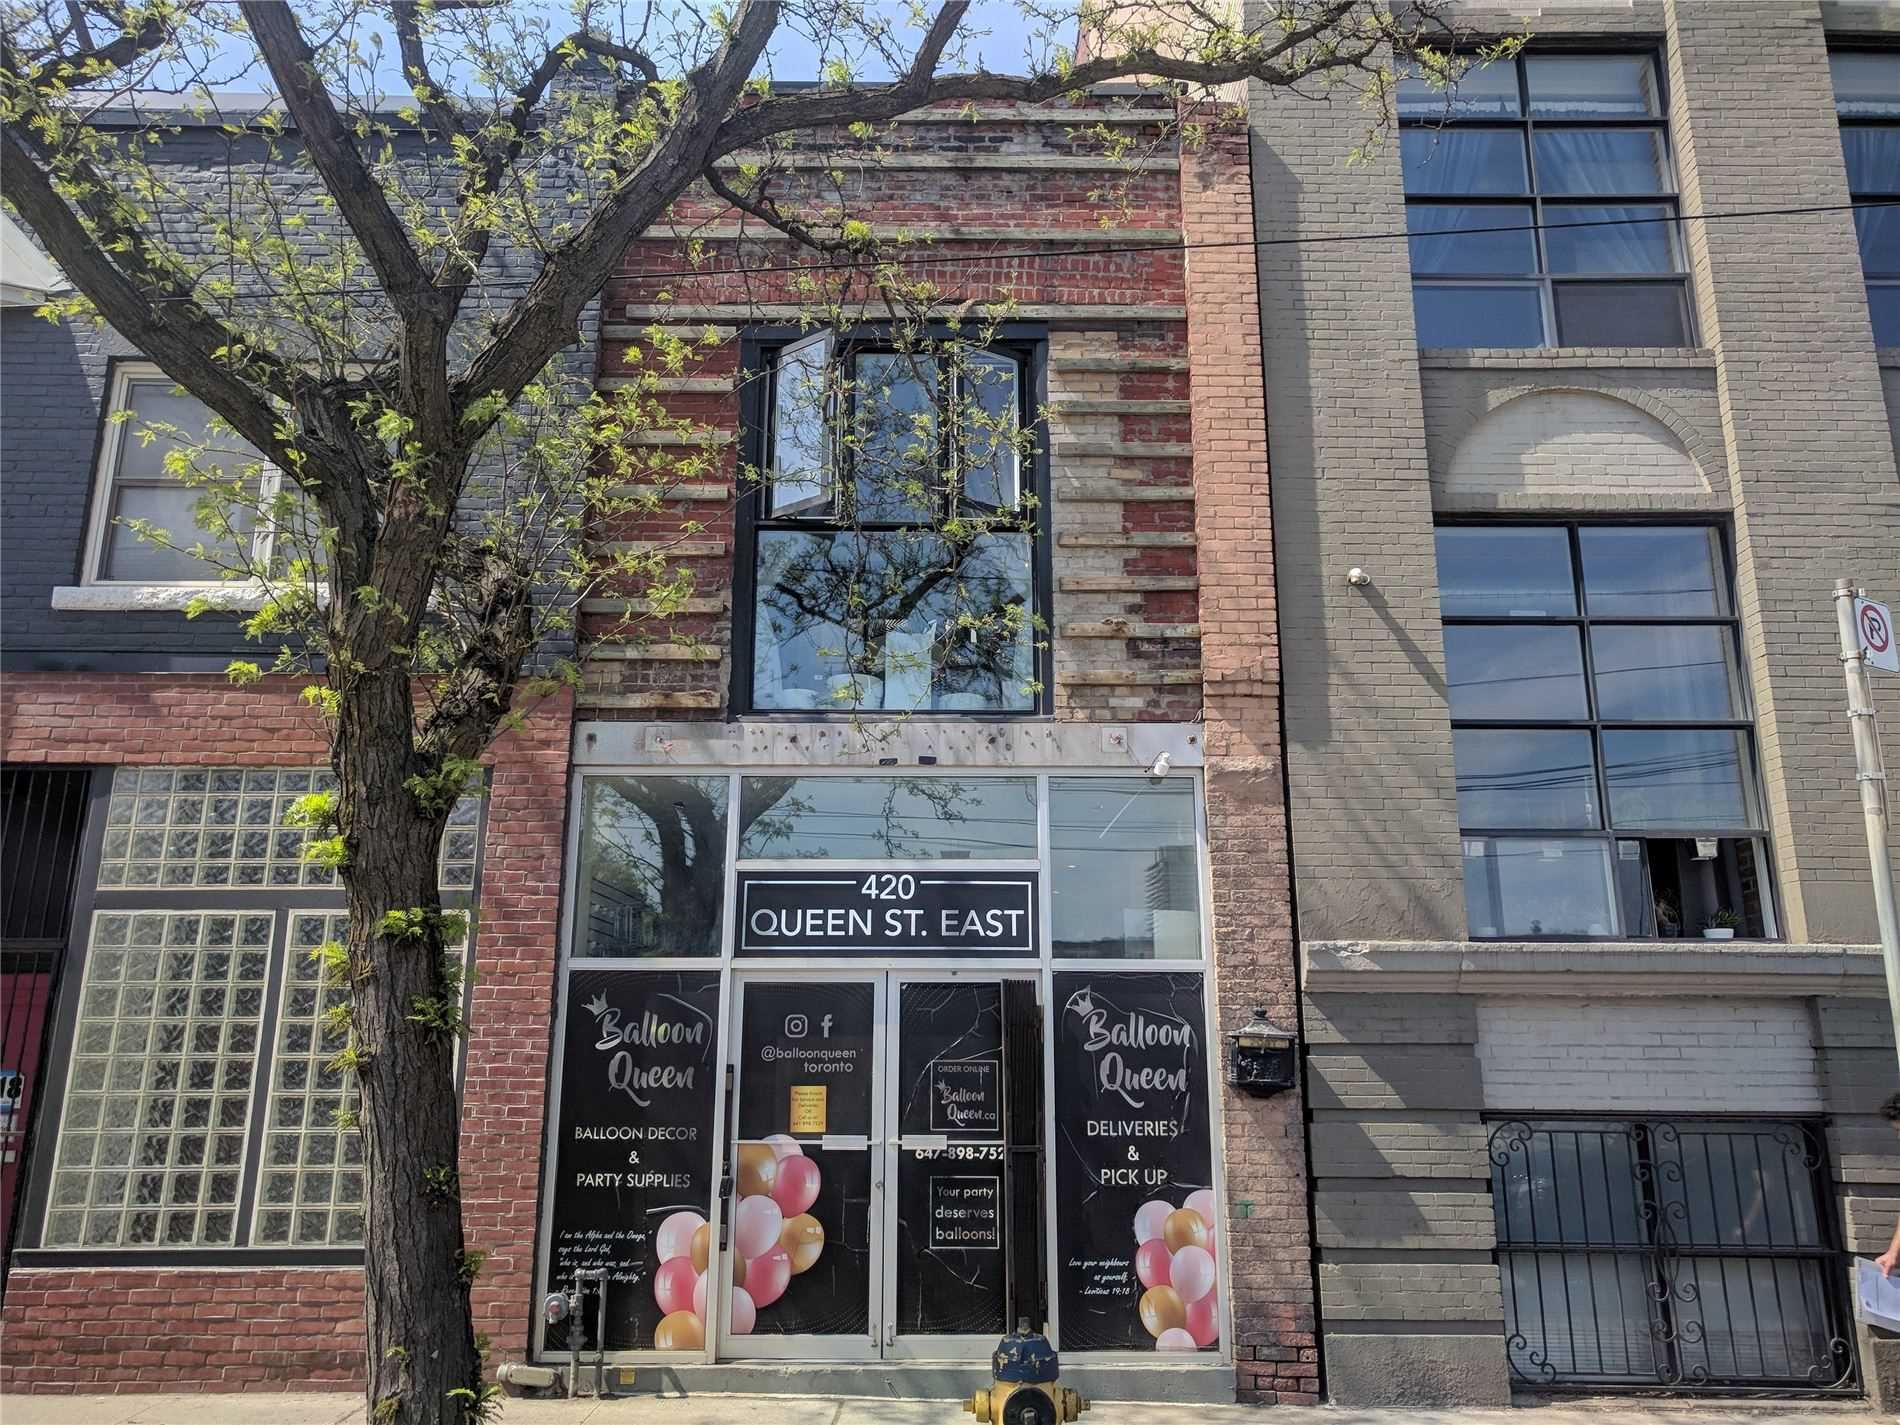 420 Queen St E, Toronto, ON M5A1T4 - MLS#: C5245395